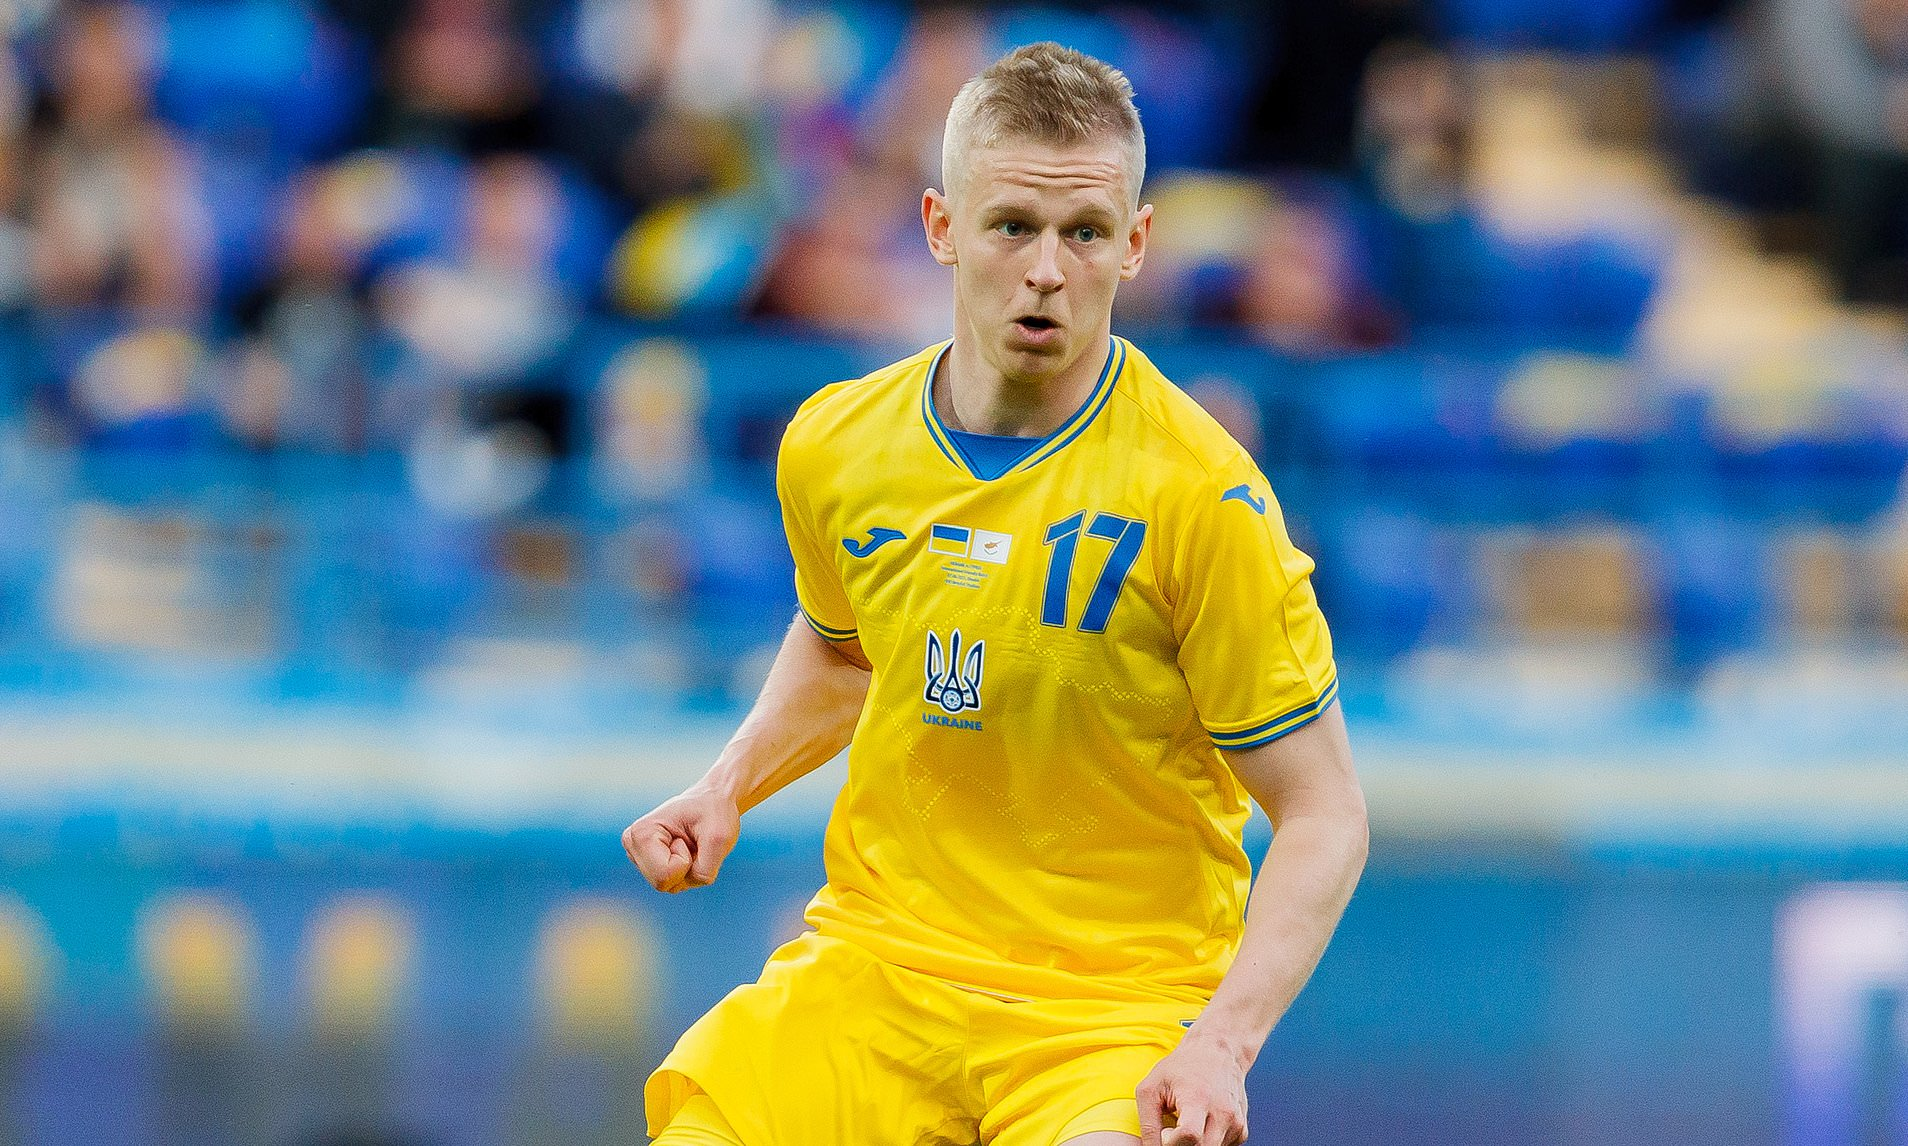 Euro 2020: We'll Shed Our Last Blood Against England -Zinchenko Vows